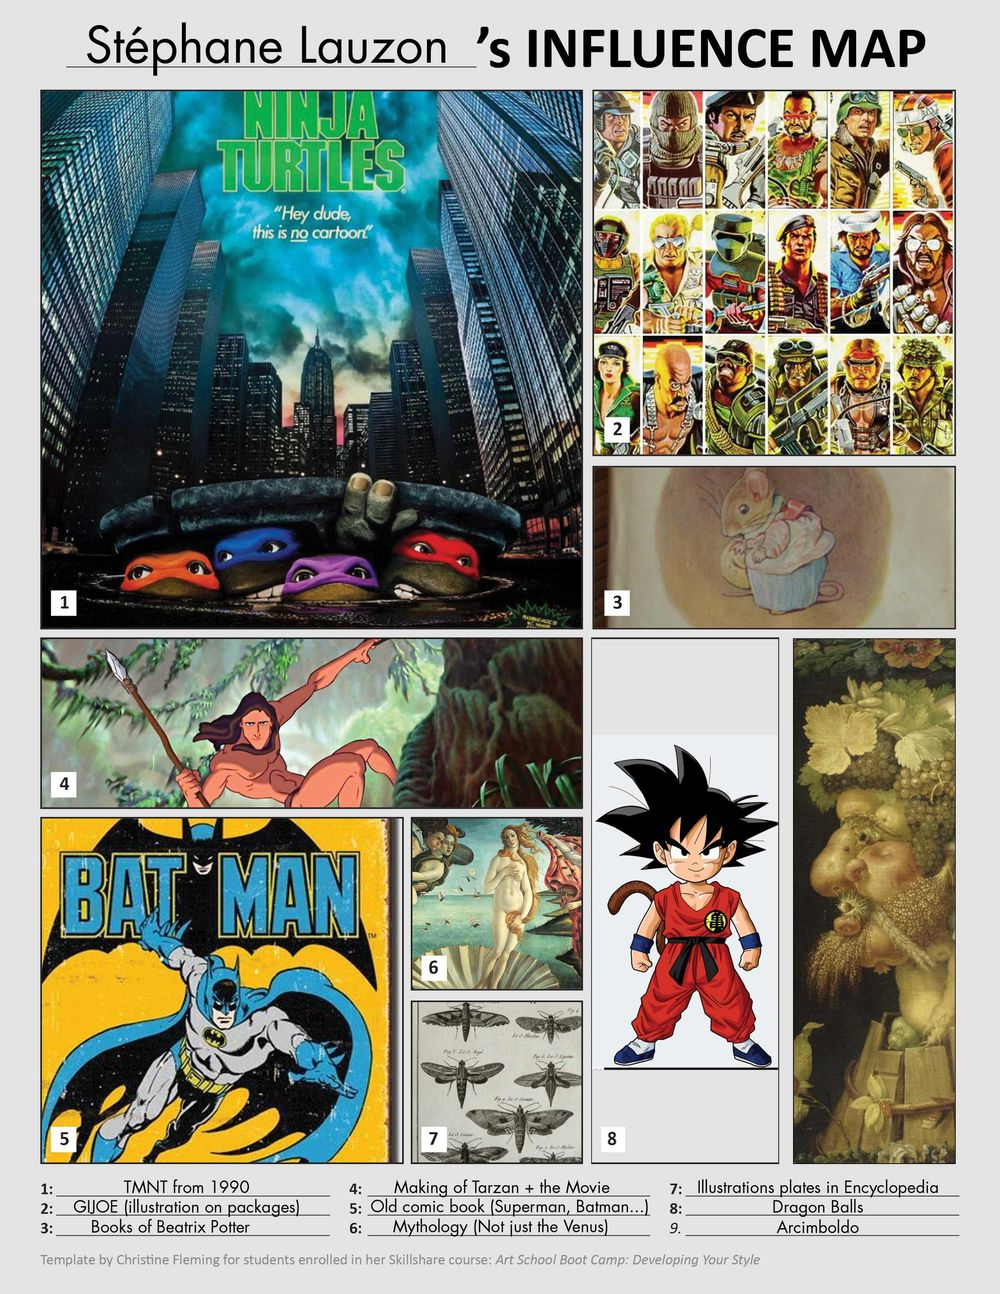 Influence map of Stephane Lauzon - image 1 - student project